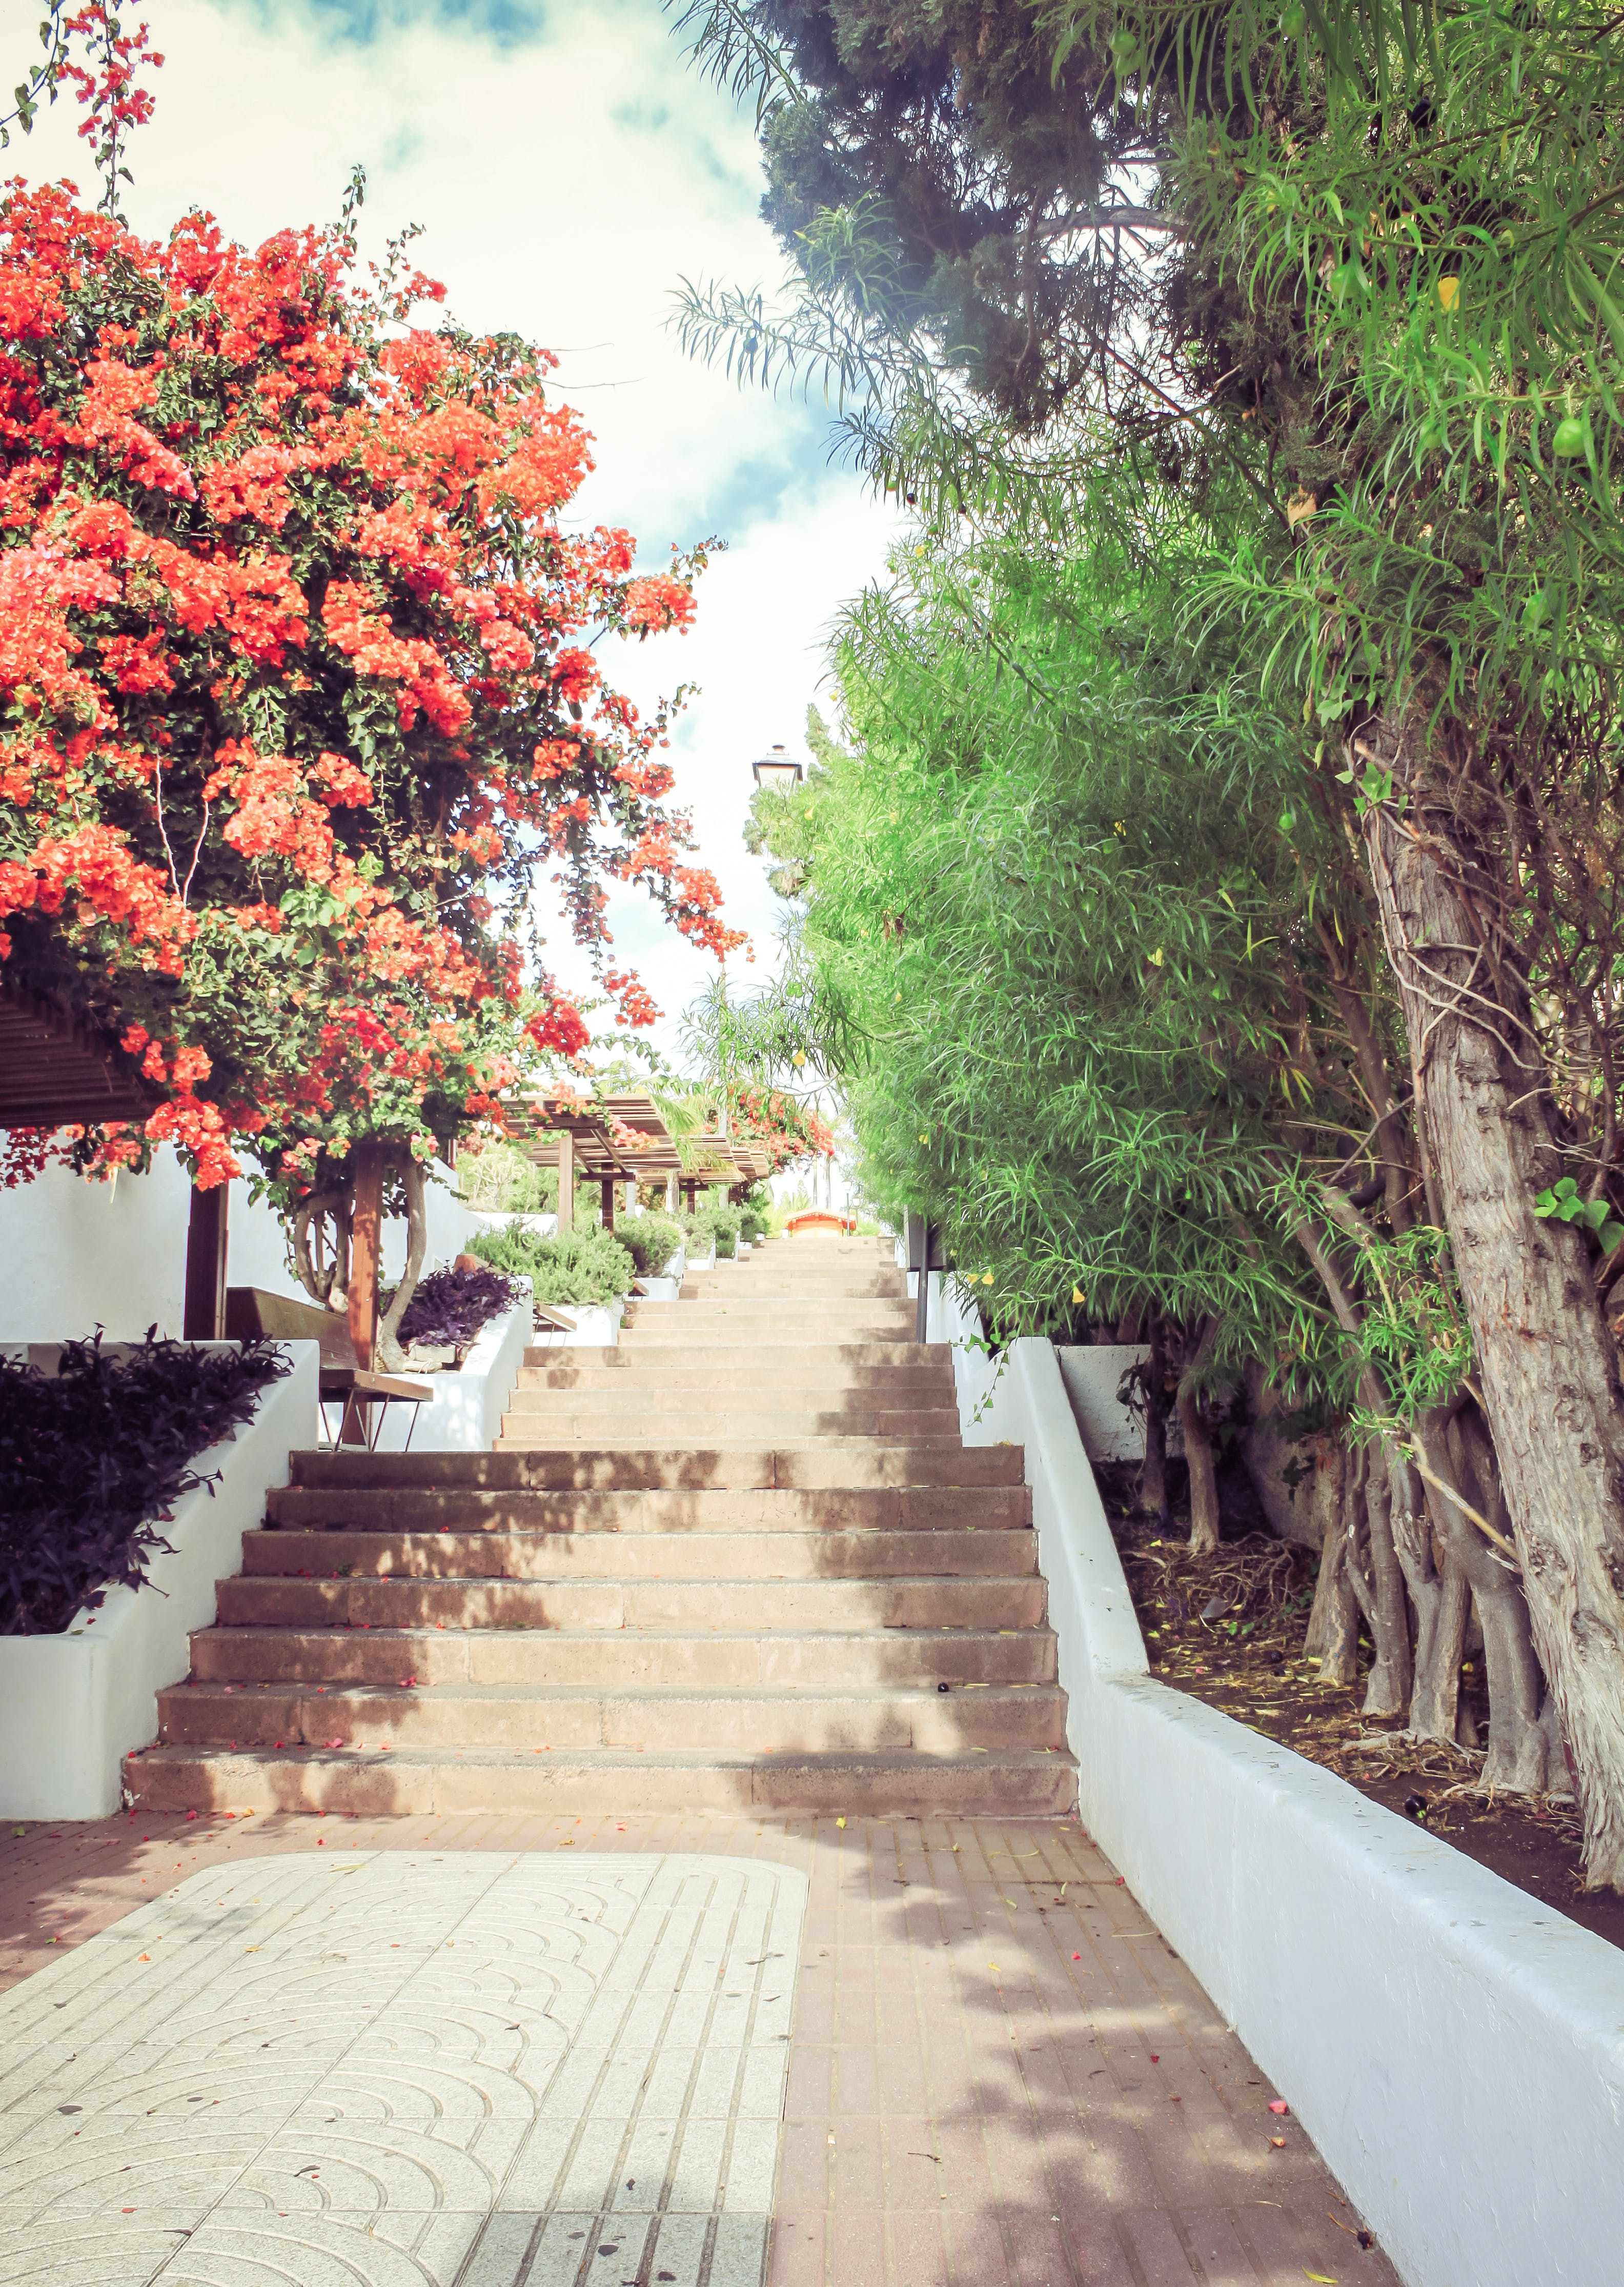 Free stock photo of architecture, building, flowers, stairs